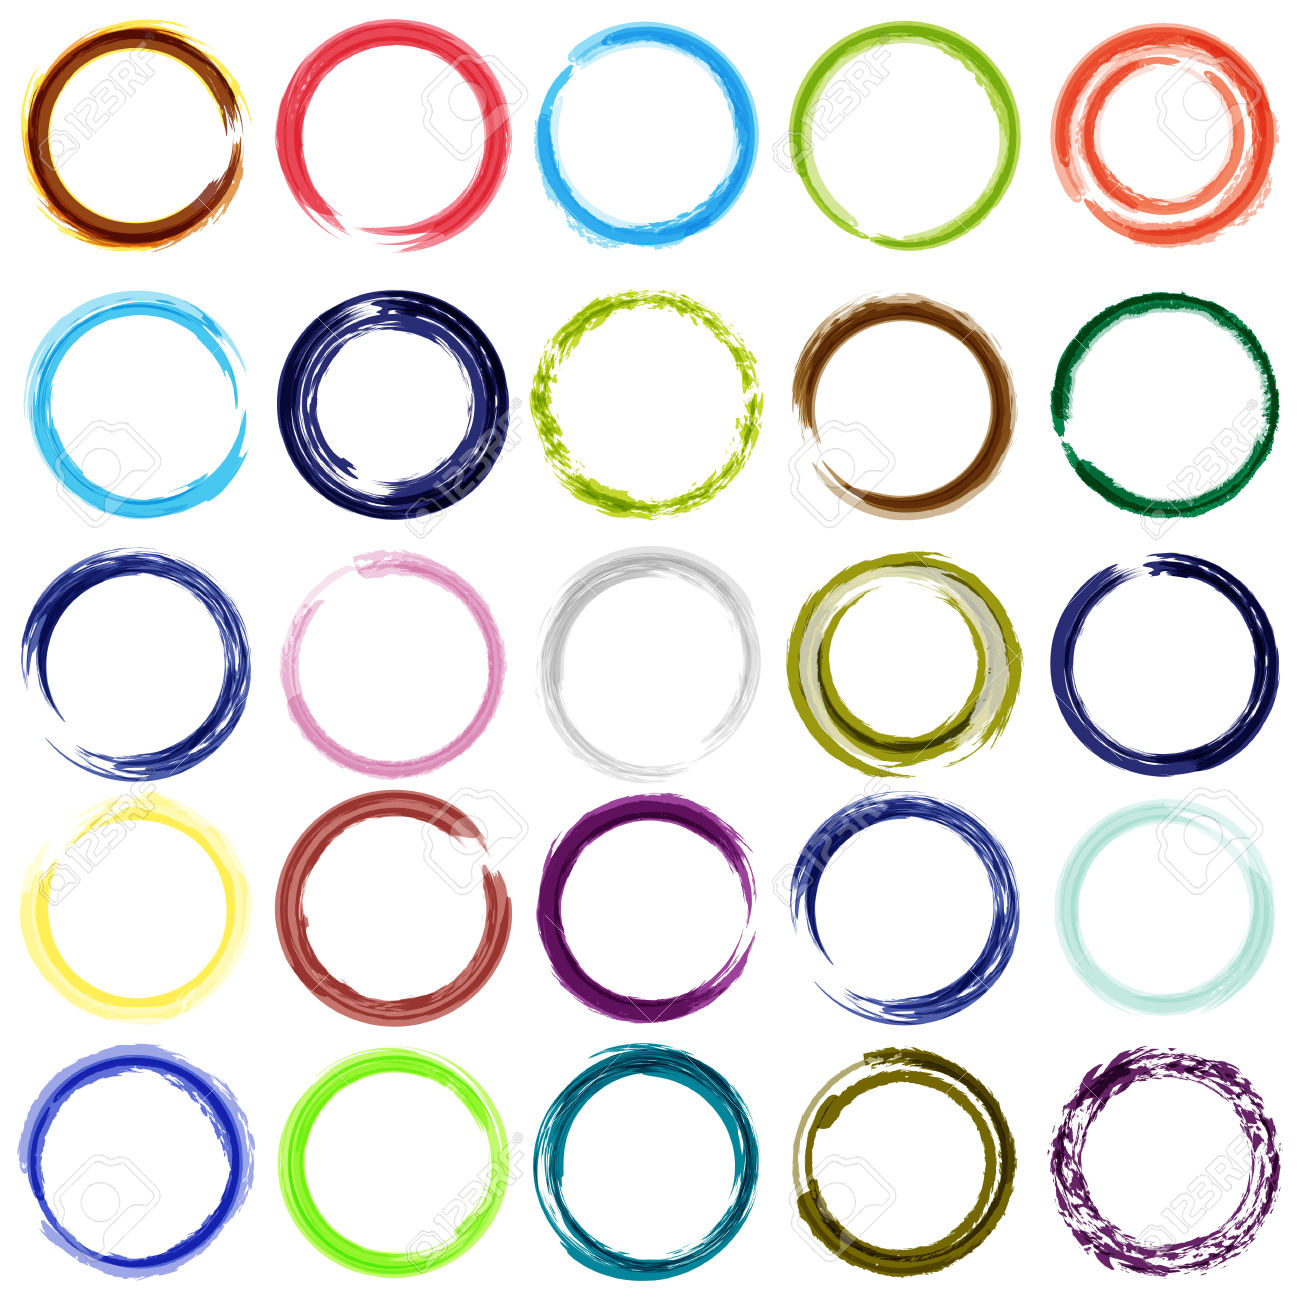 Set Of 25 Diferent Color Circle Brush Strokes Royalty Free.